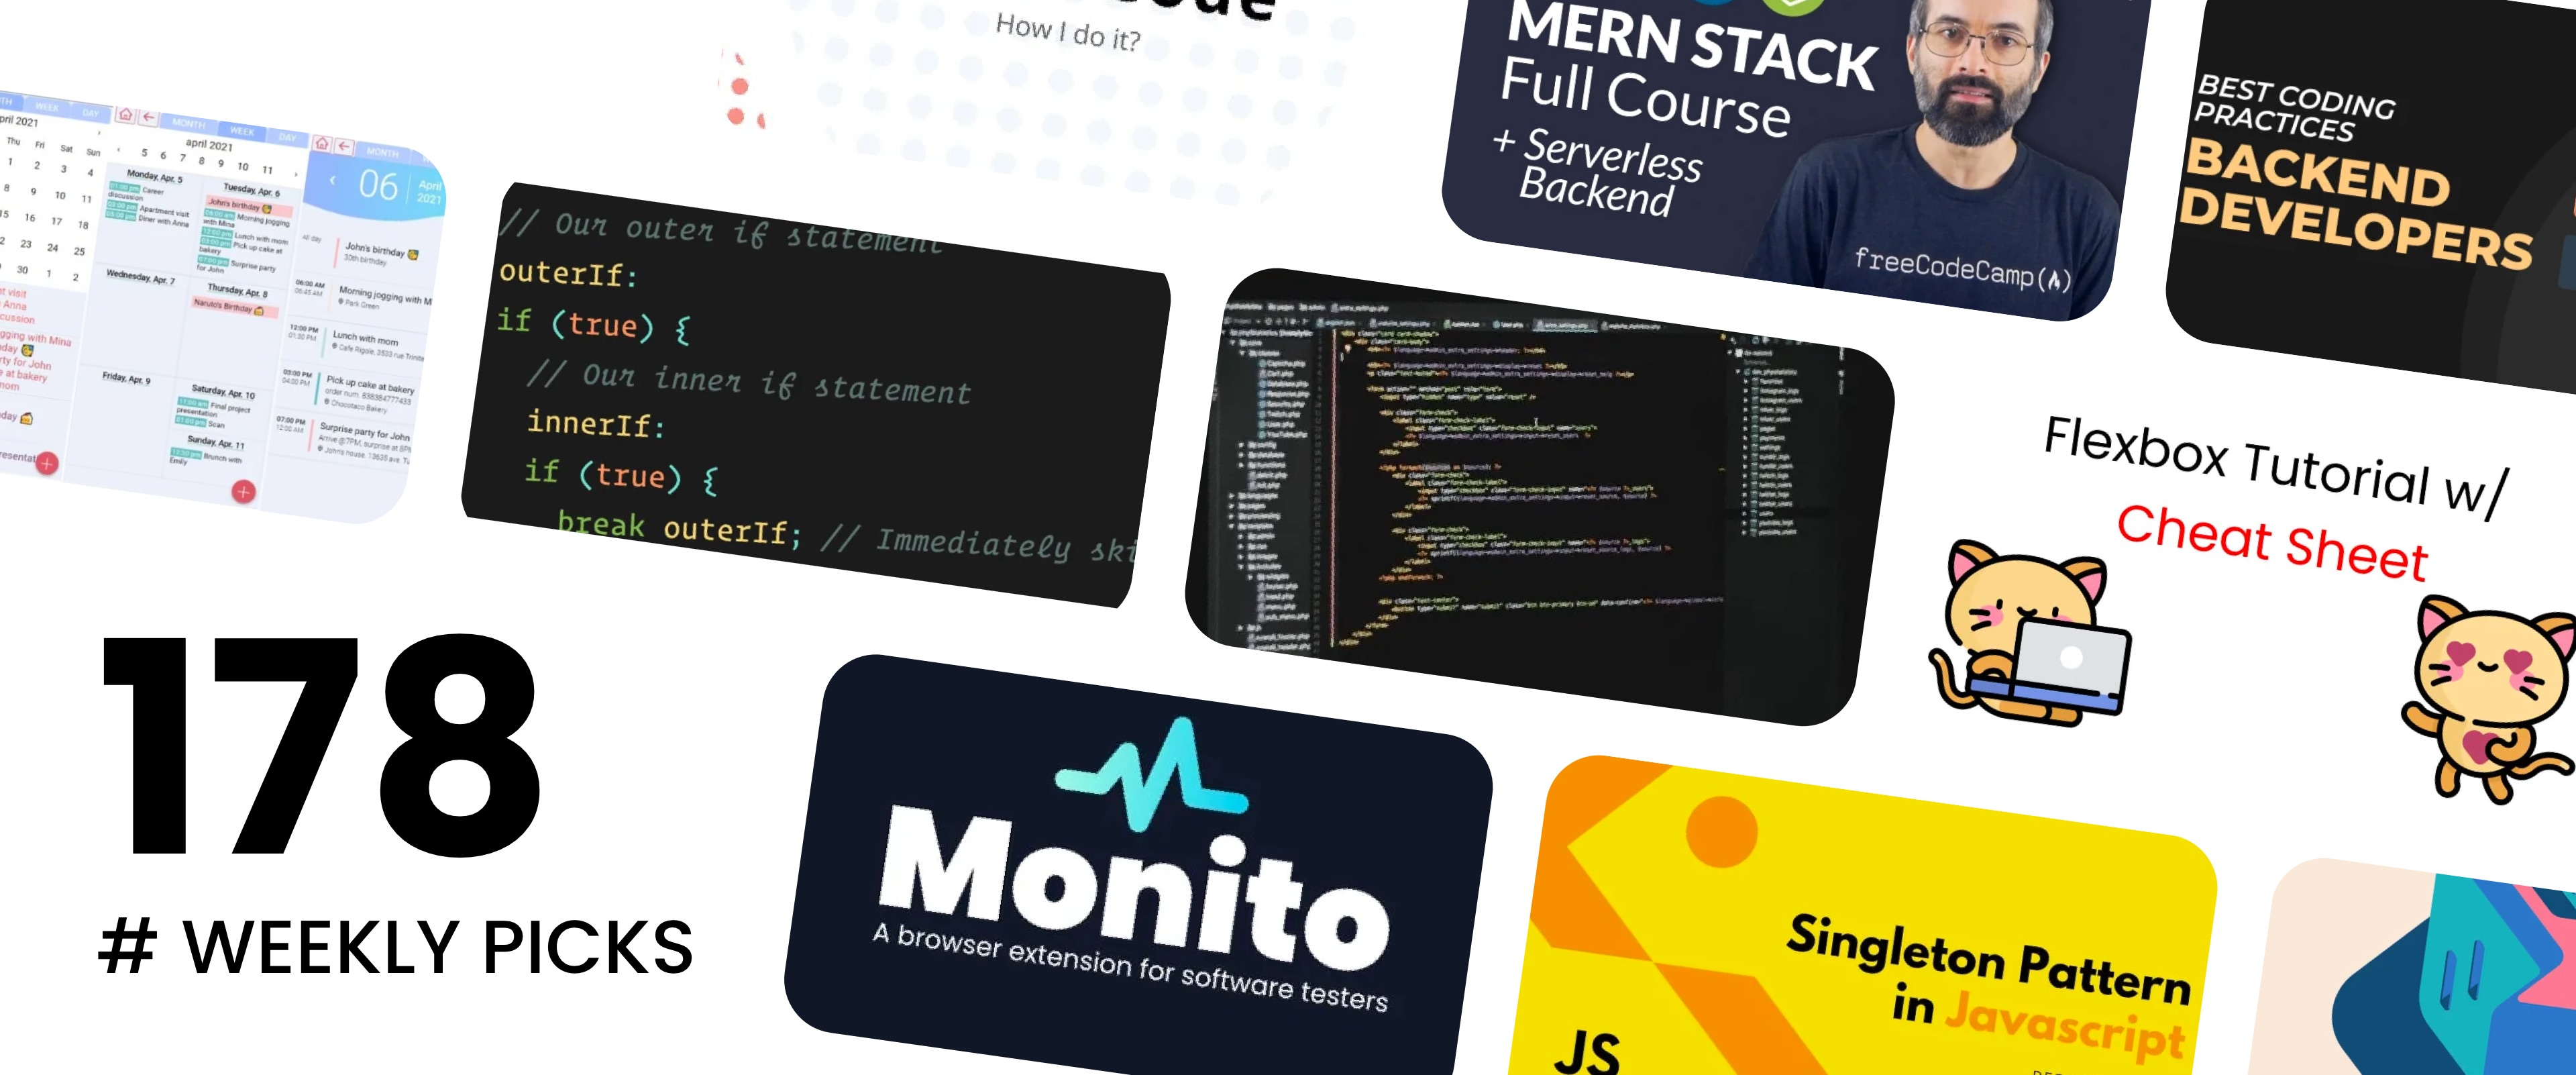 Coding Practices, MERN Stack, Working With TypeScript - Picks 178